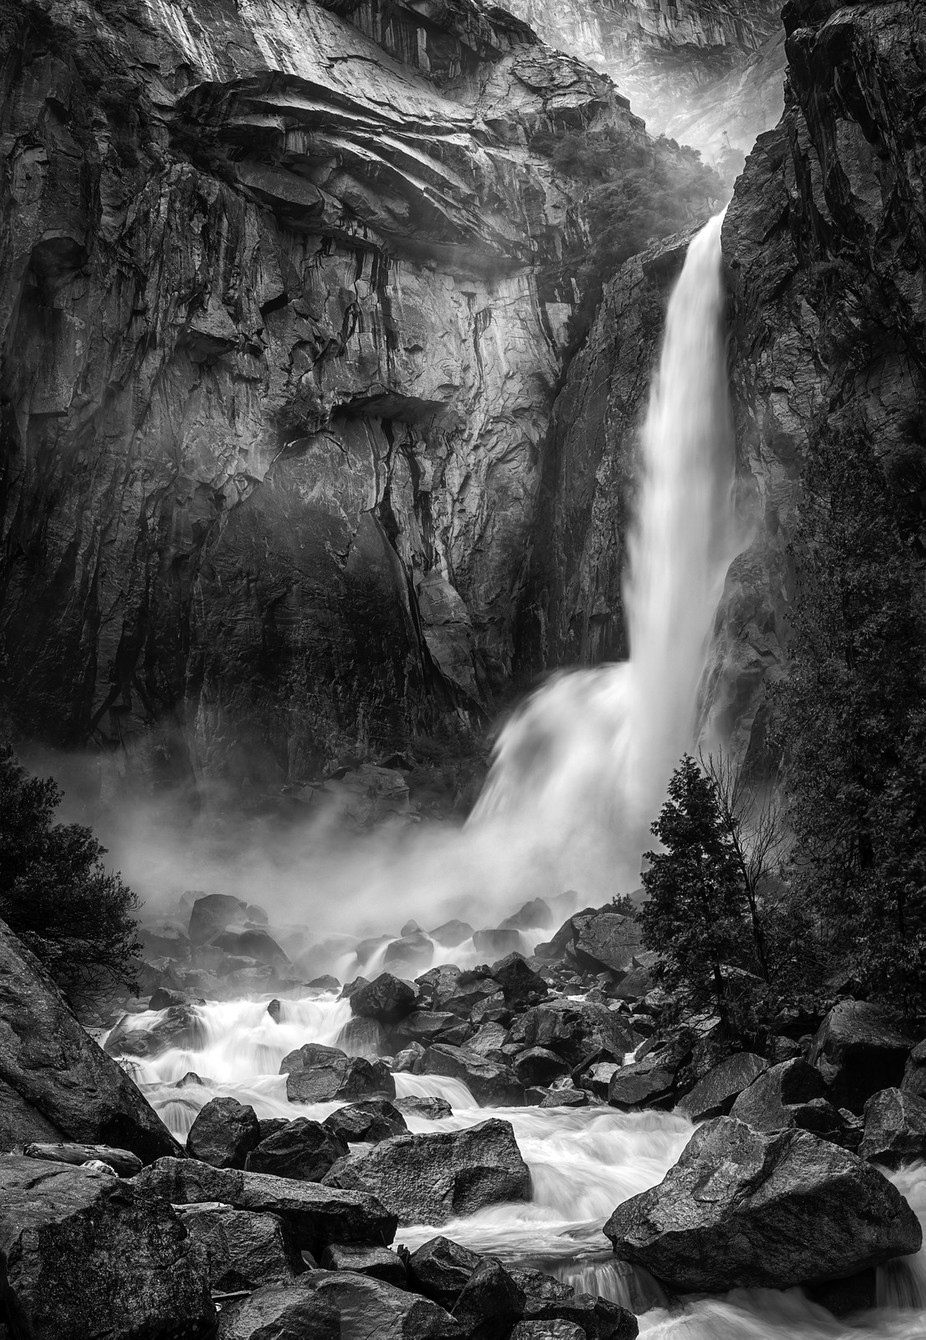 Lower Yosemite Falls by DJLee - The Water In Black And White Photo Contest